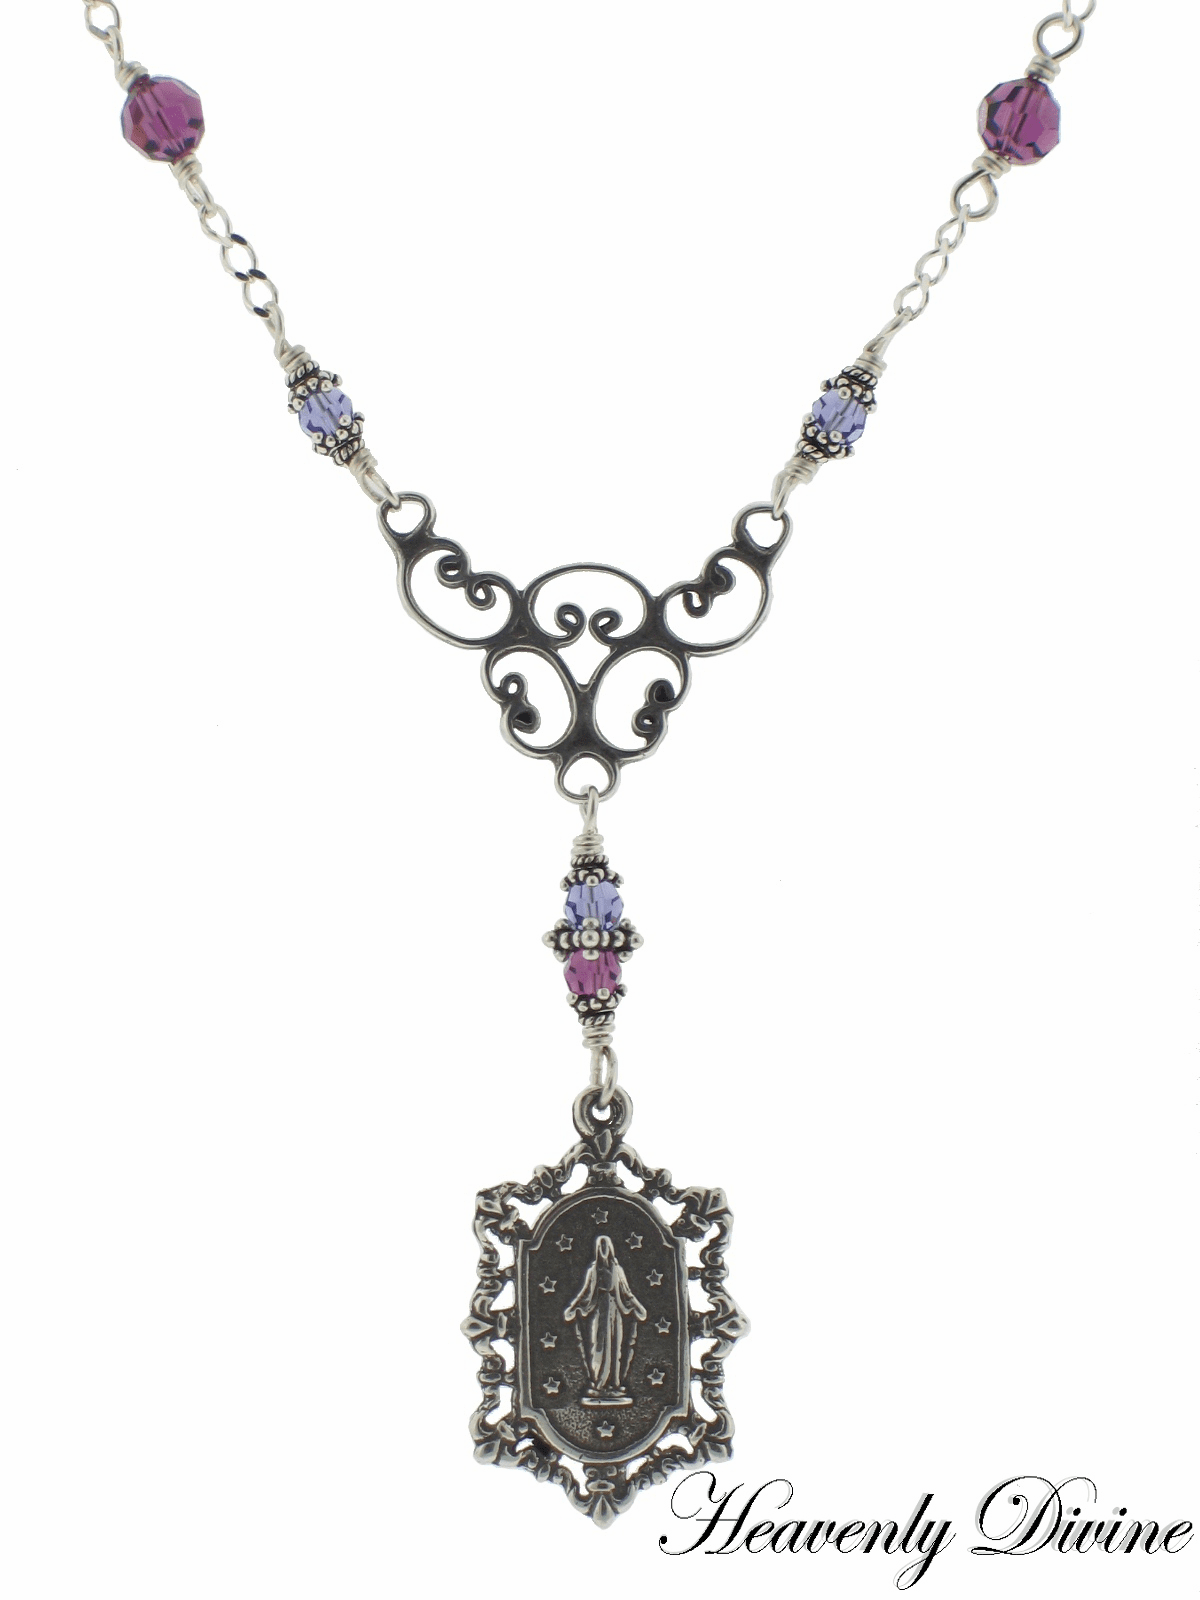 Amethyst & Tanzanite Swarovski Crystal Sterling Silver Miraculous Medal Necklace by Heavenly Divine